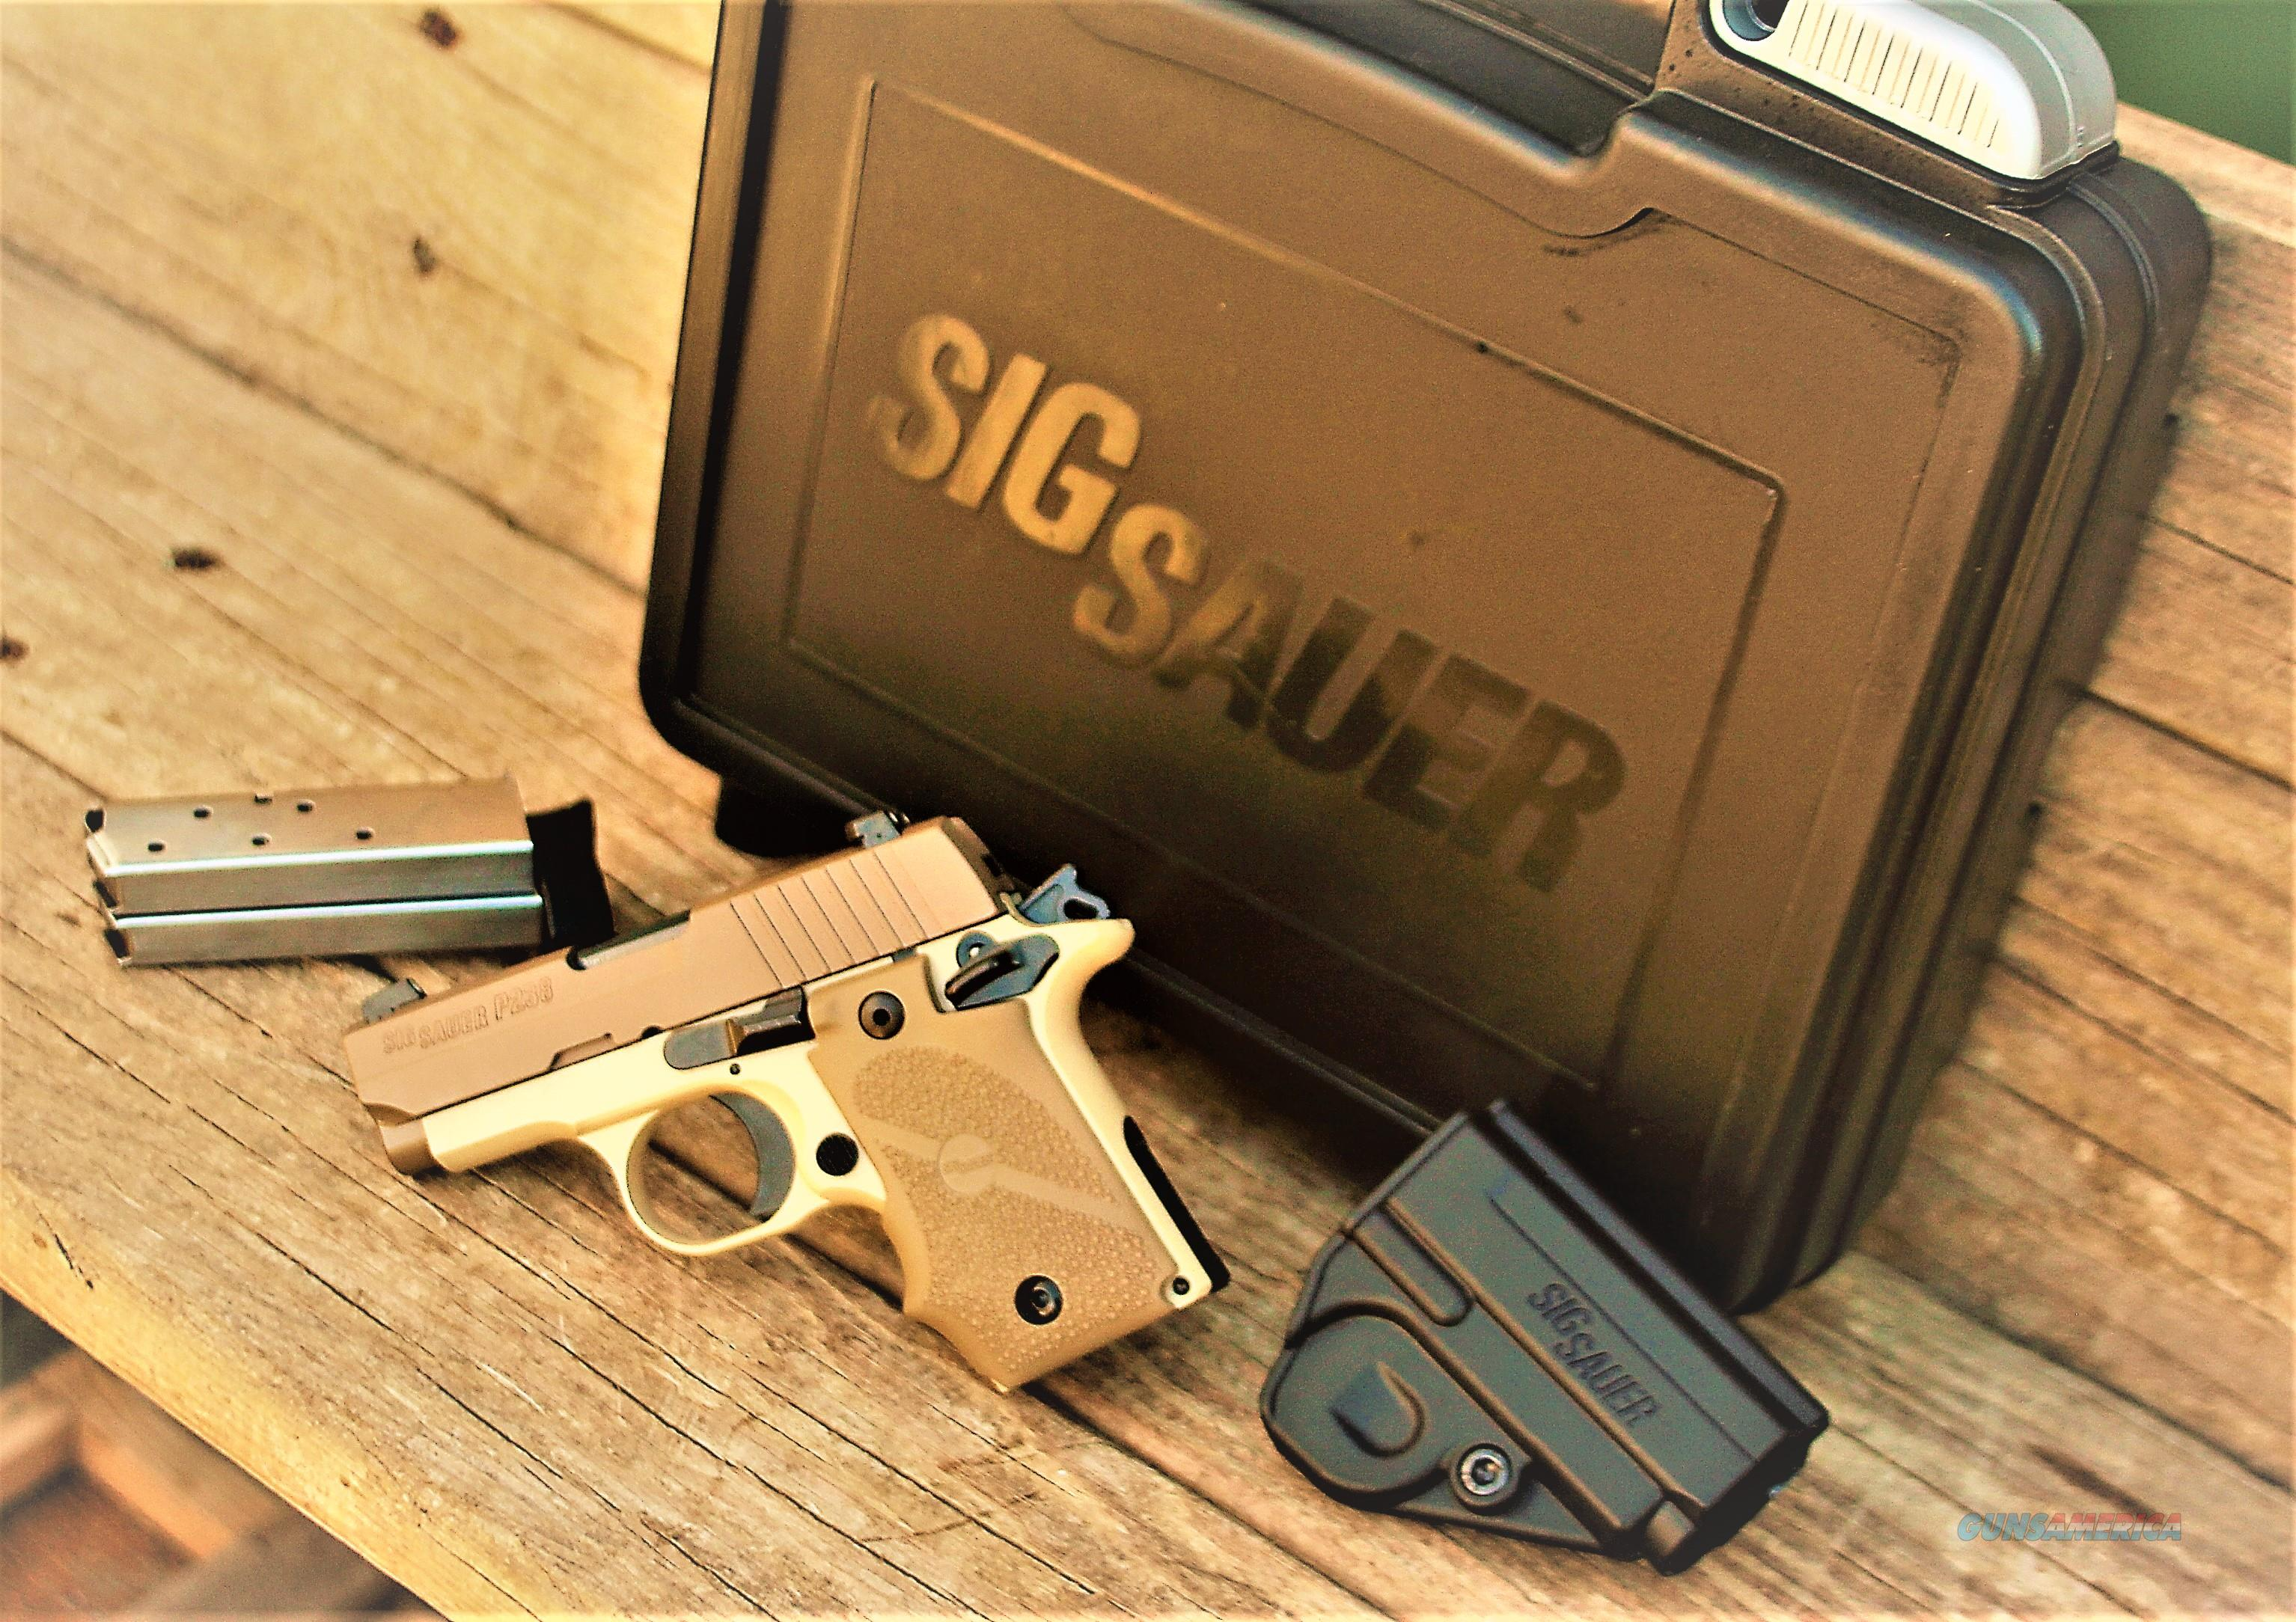 FREE !!! Accessory LASER 238 / 938 9MM/ 380ACP RED LASER $63 EASY PAY DOWN LAYAWAY 1.  Sig Sauer P238 Concealed & Carry Pocket Pistol Siglite Night Sights Laser Light 7 Rd Barrel  2.7 in Hogue sig Desert Grip Light Tan Finish  NS  238380DES  Guns > Pistols > Sig - Sauer/Sigarms Pistols > P238